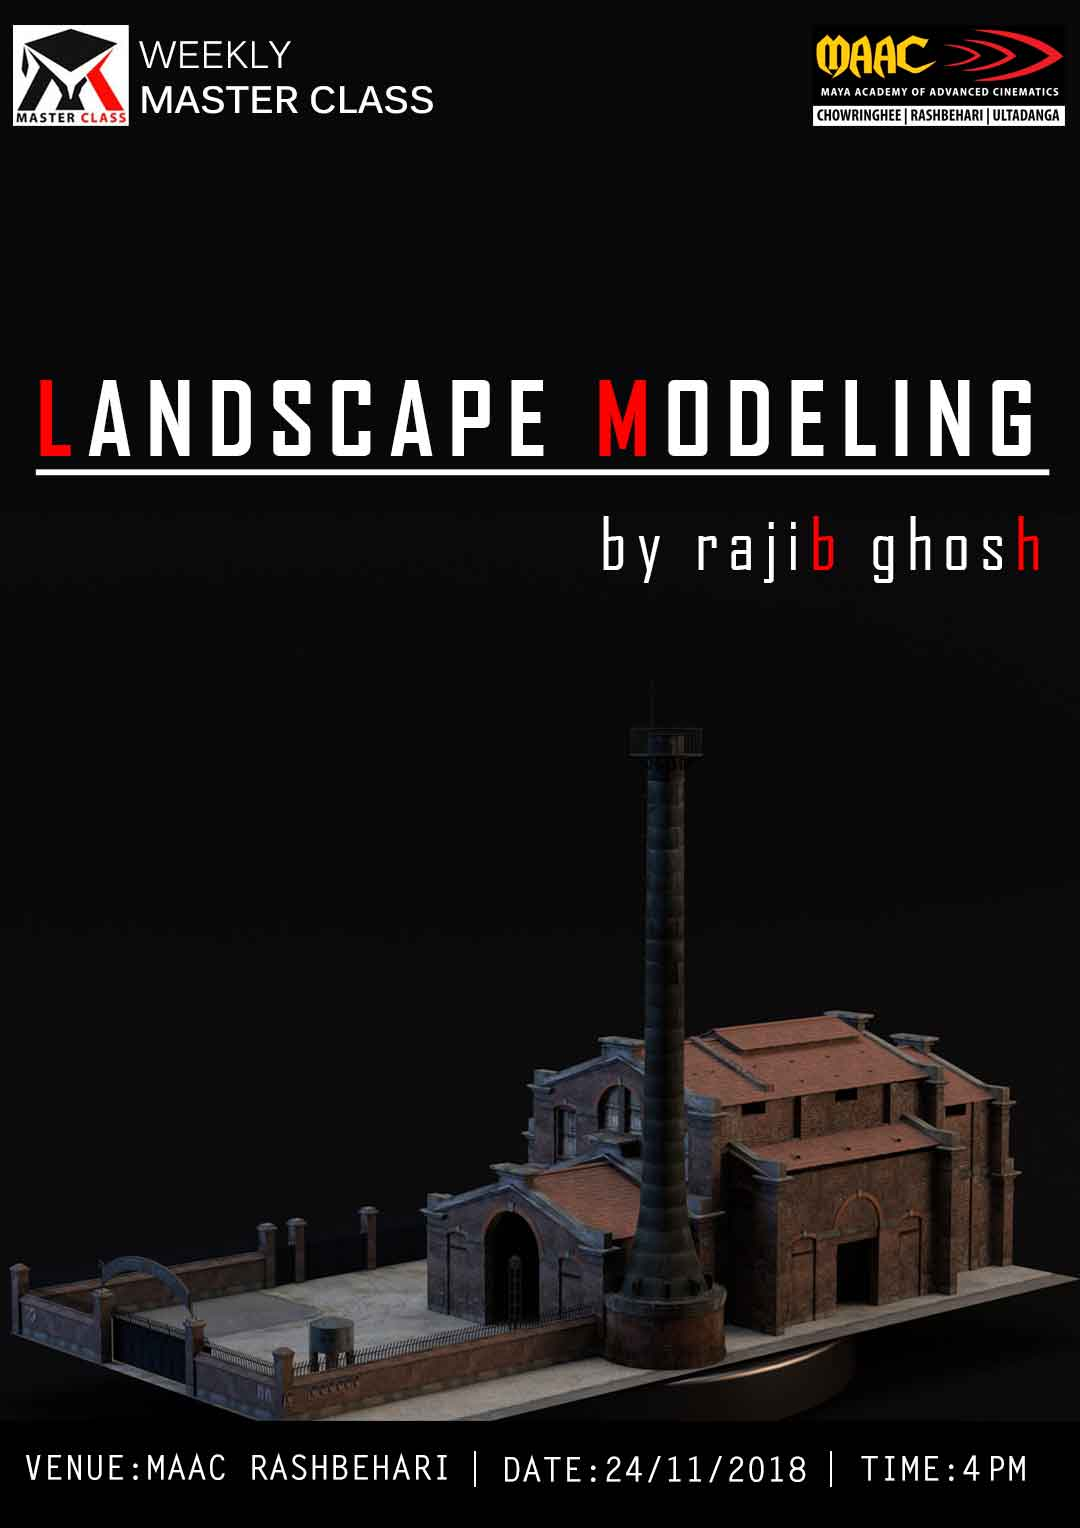 Weekly Master Class on landscape Modeling